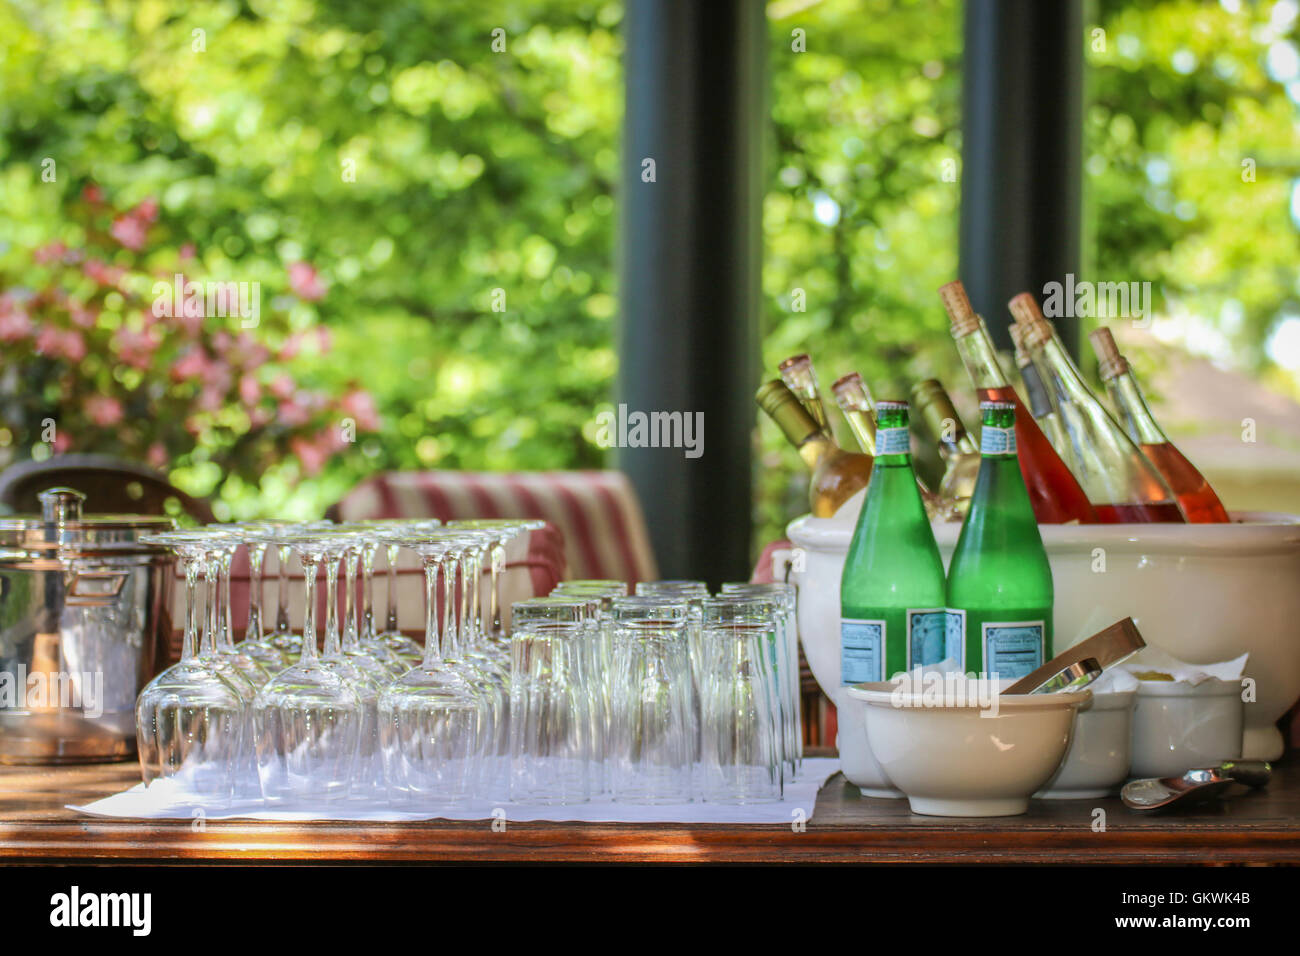 Classy bar setup for a party - Stock Image